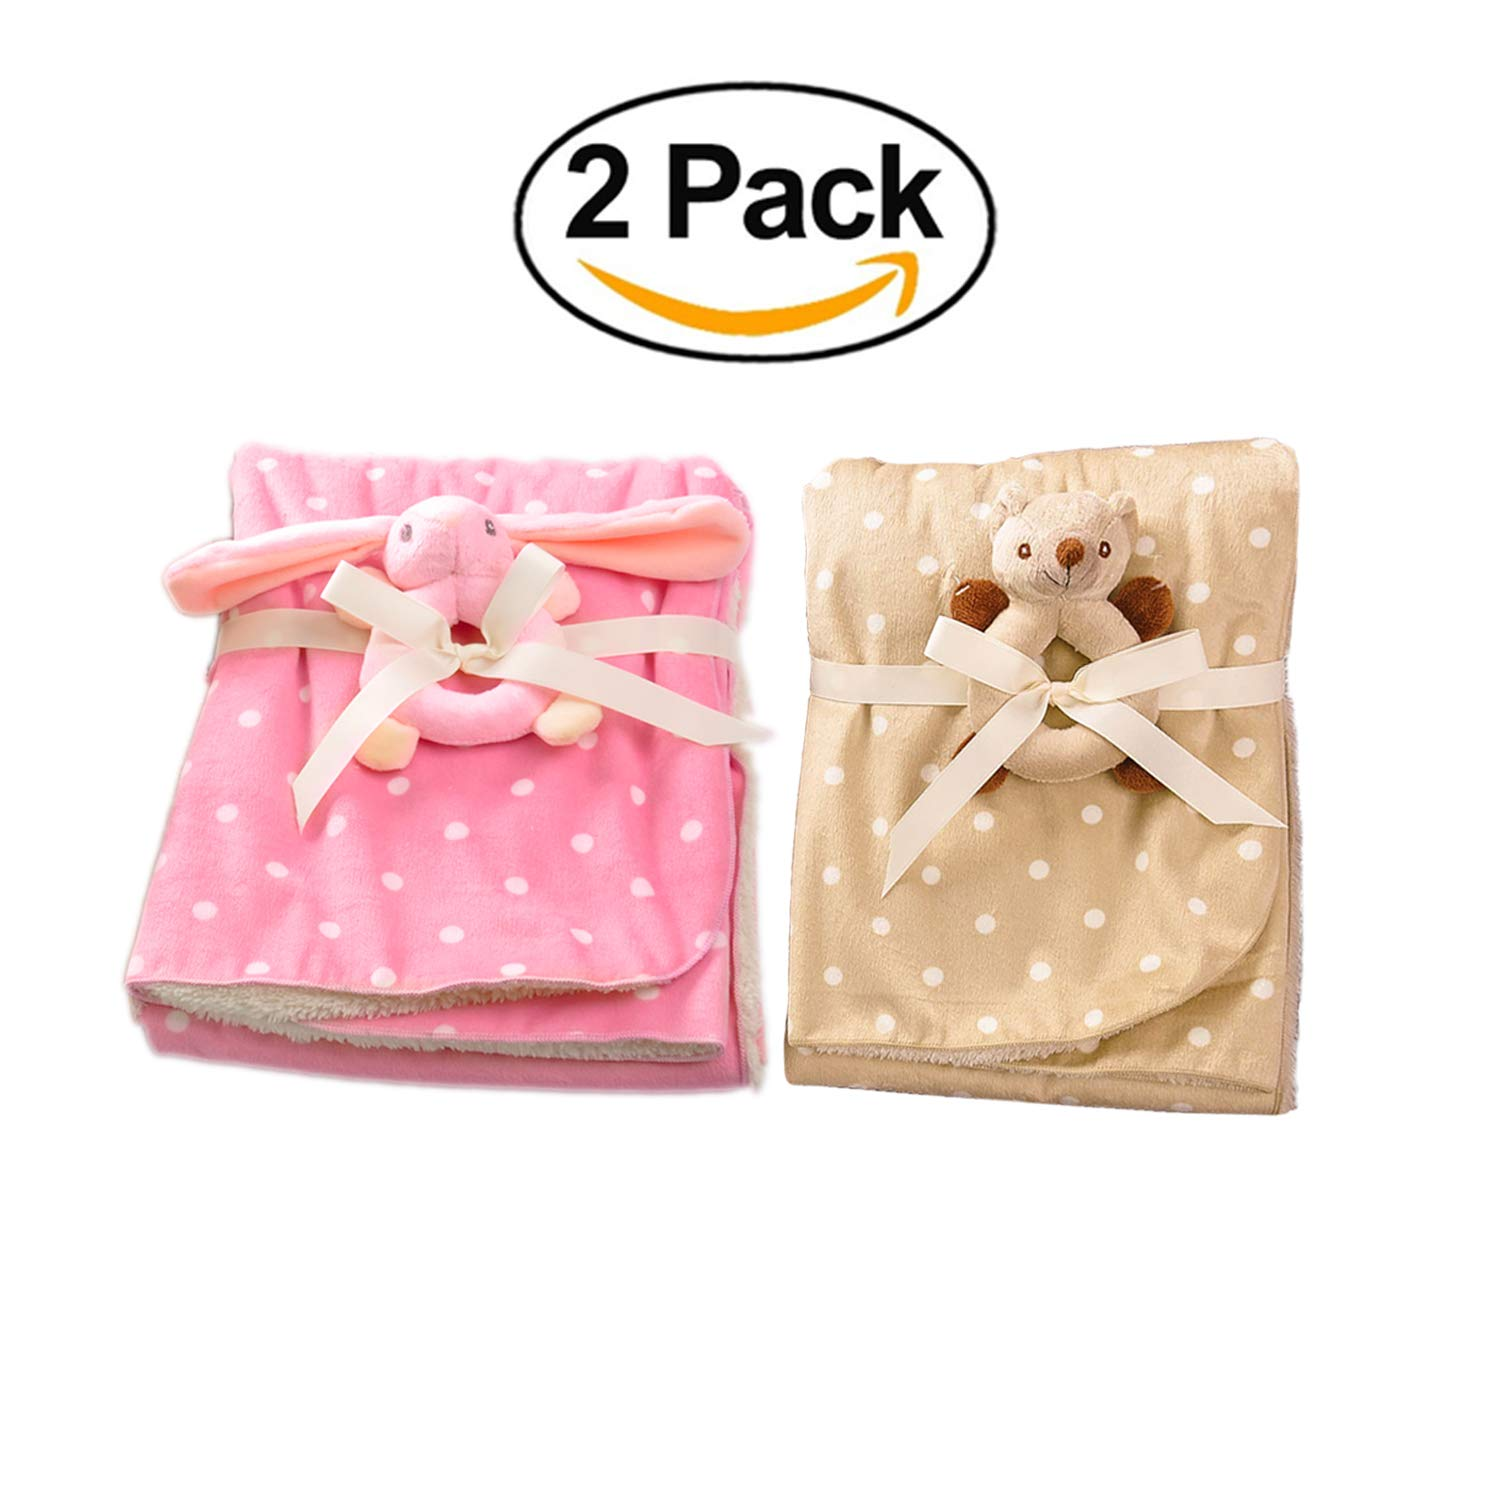 Product Choices Luxury Baby Blanket   Extremely Soft and Fluffy   Includes 2 Toys   Perfect for Infant, Toddler or Children   Premium Quality   2 Gorgeous Blankets  